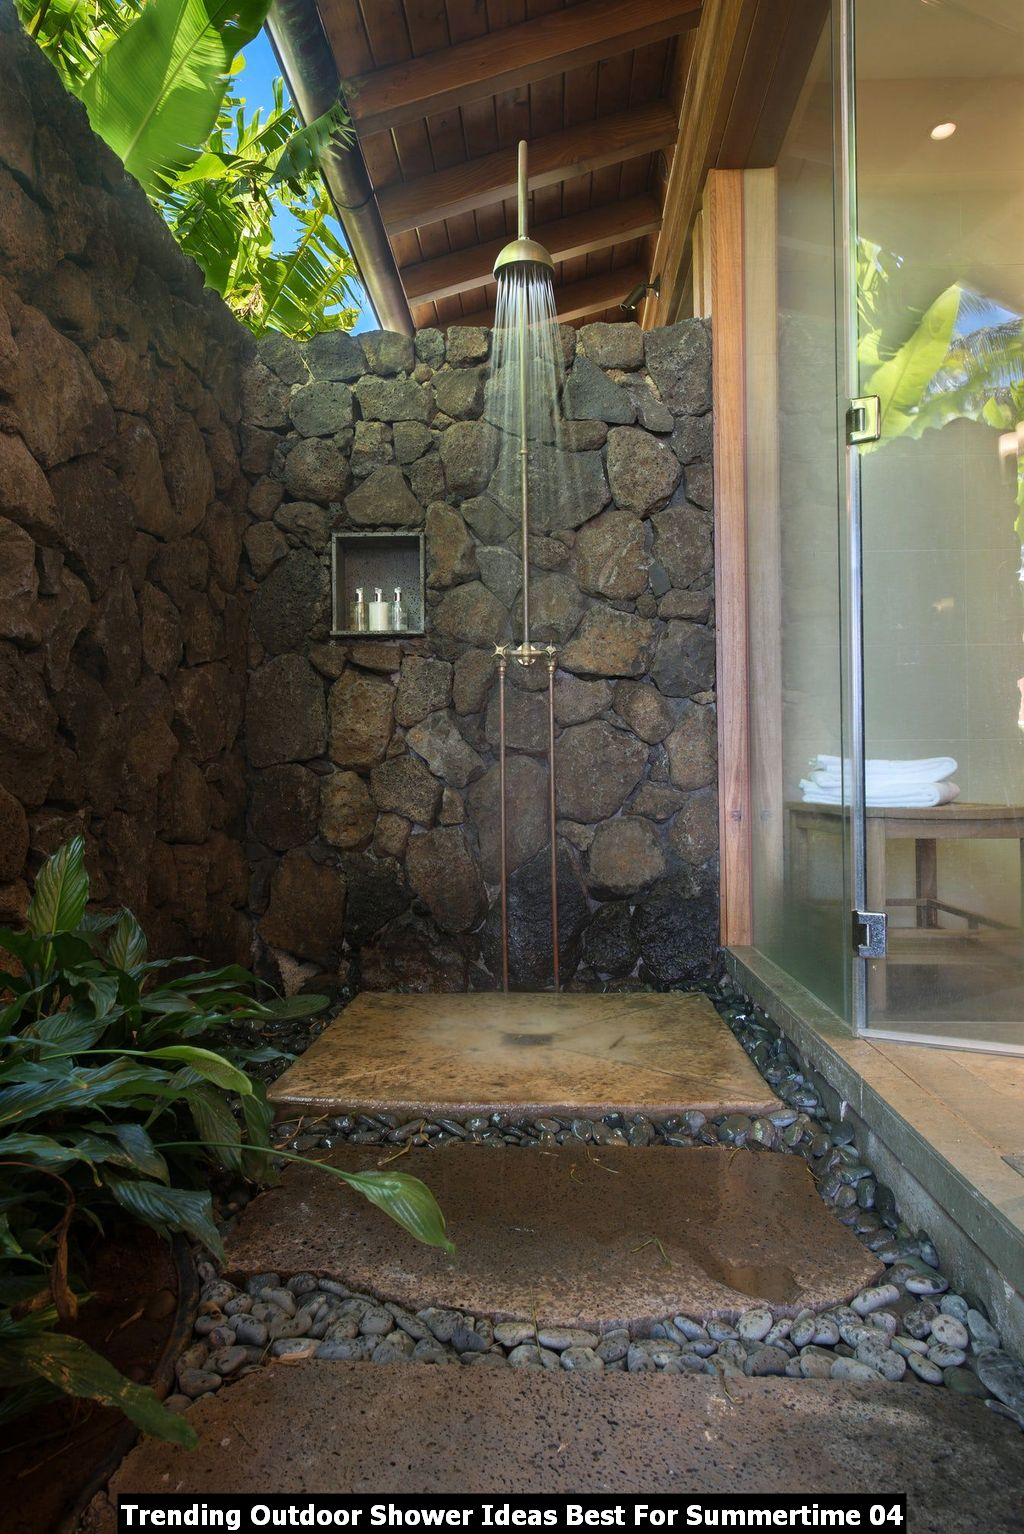 Trending Outdoor Shower Ideas Best For Summertime 04